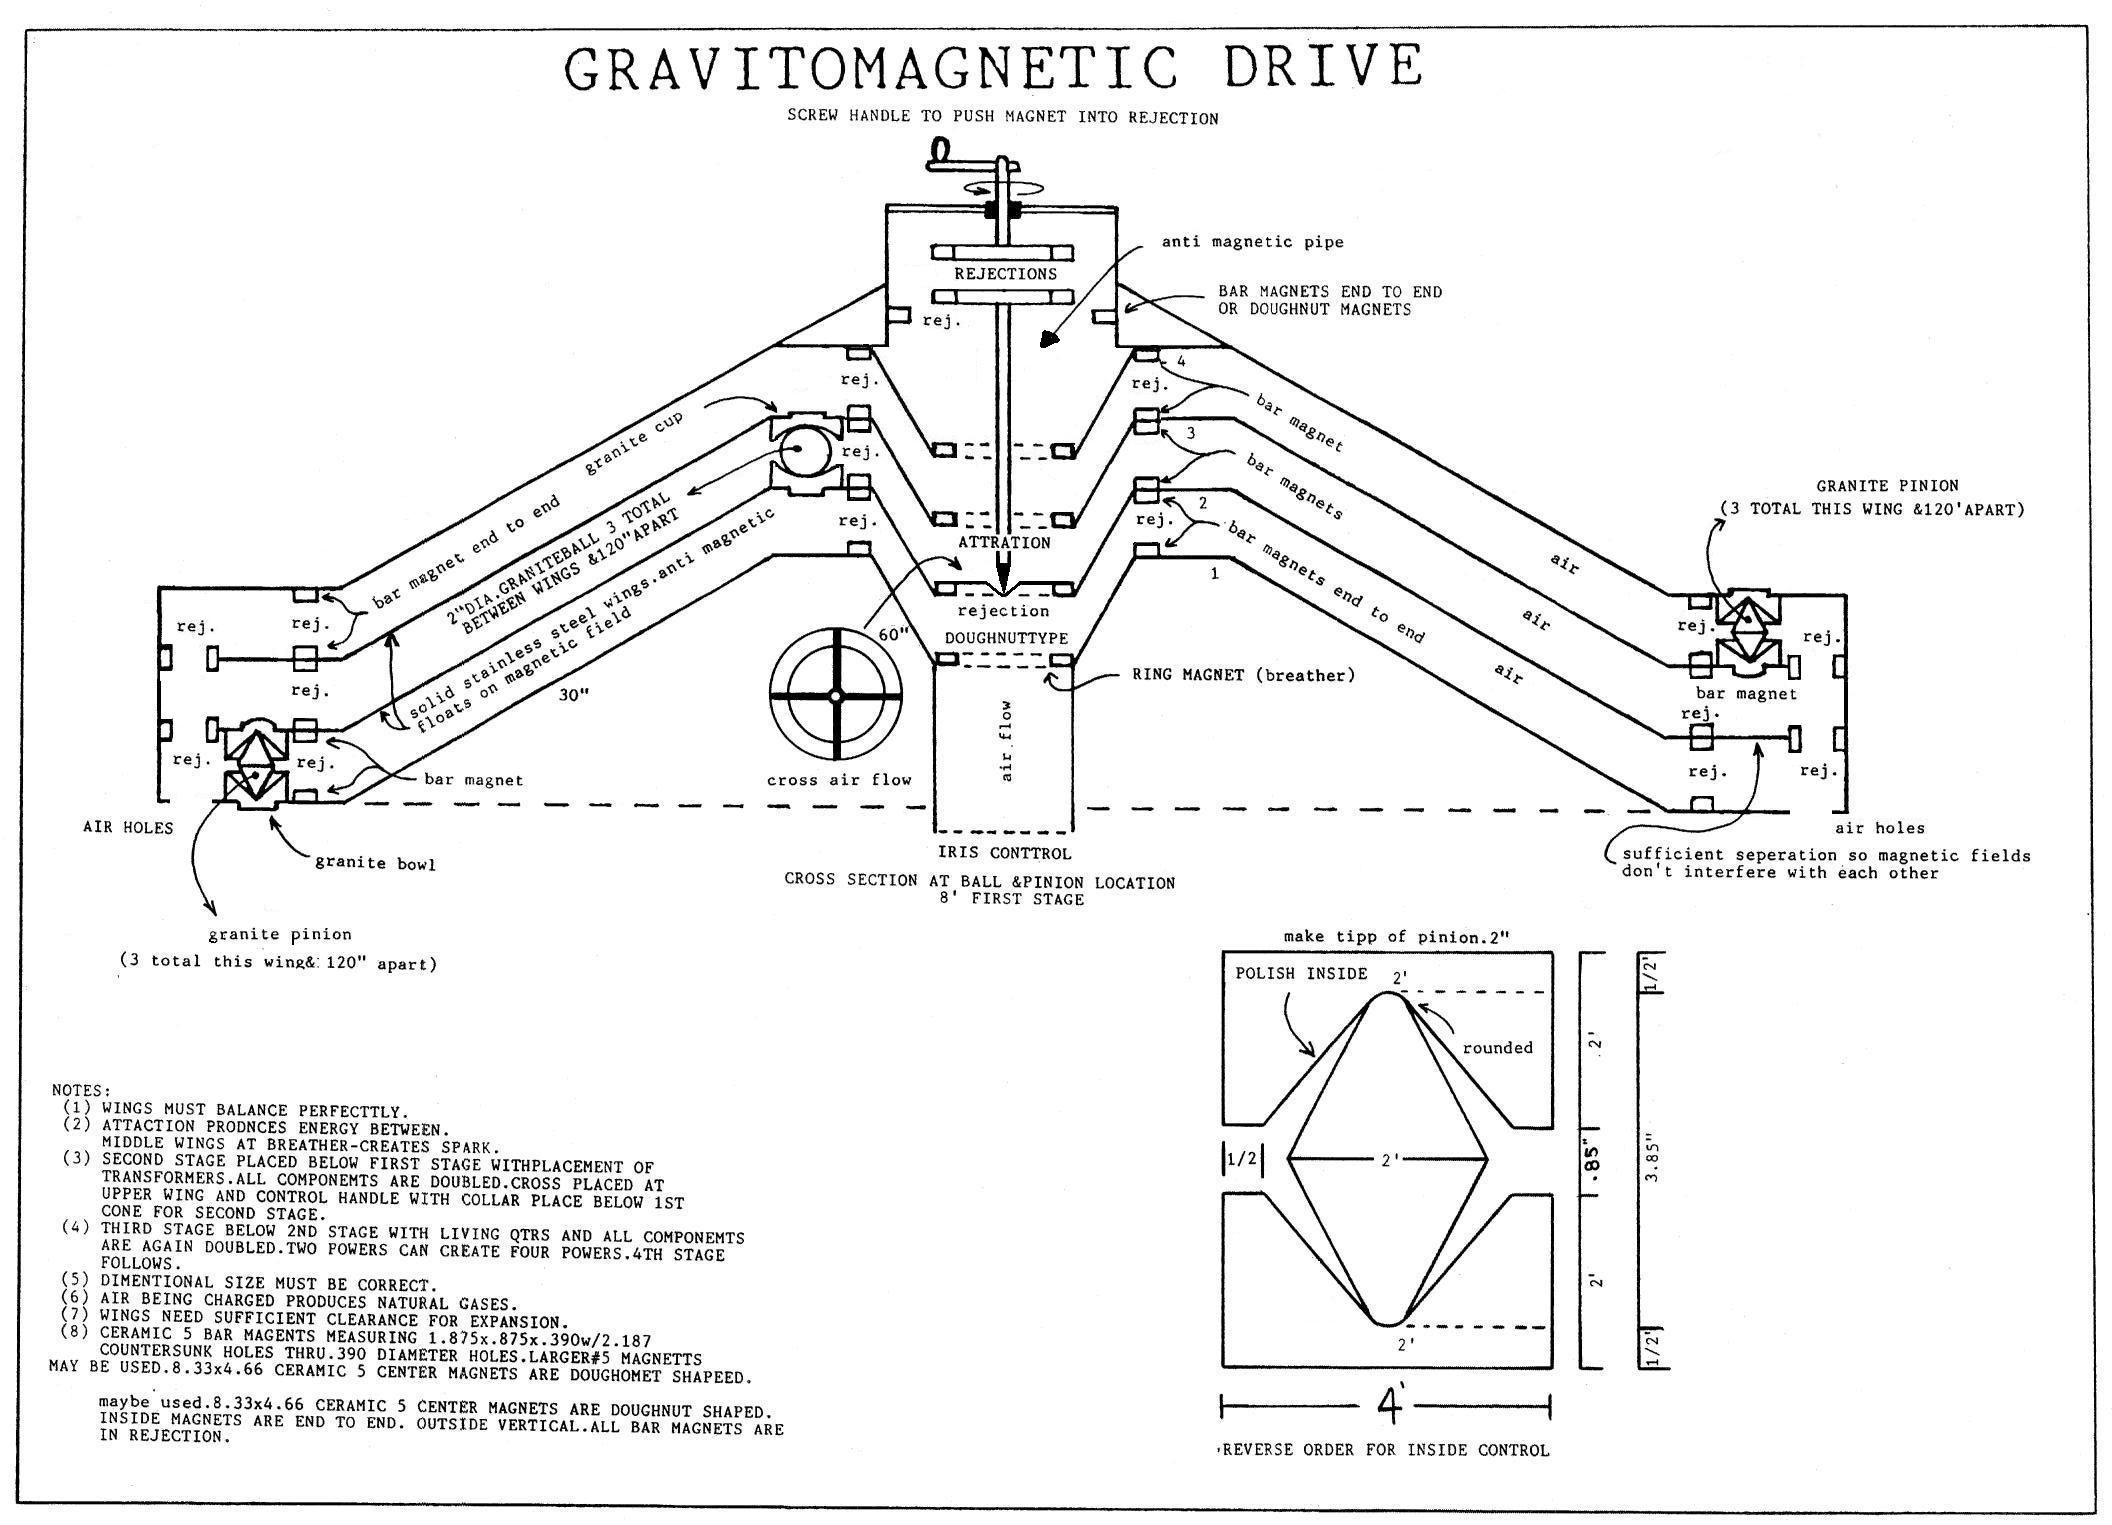 wwii ufo gravitomagnetic drive